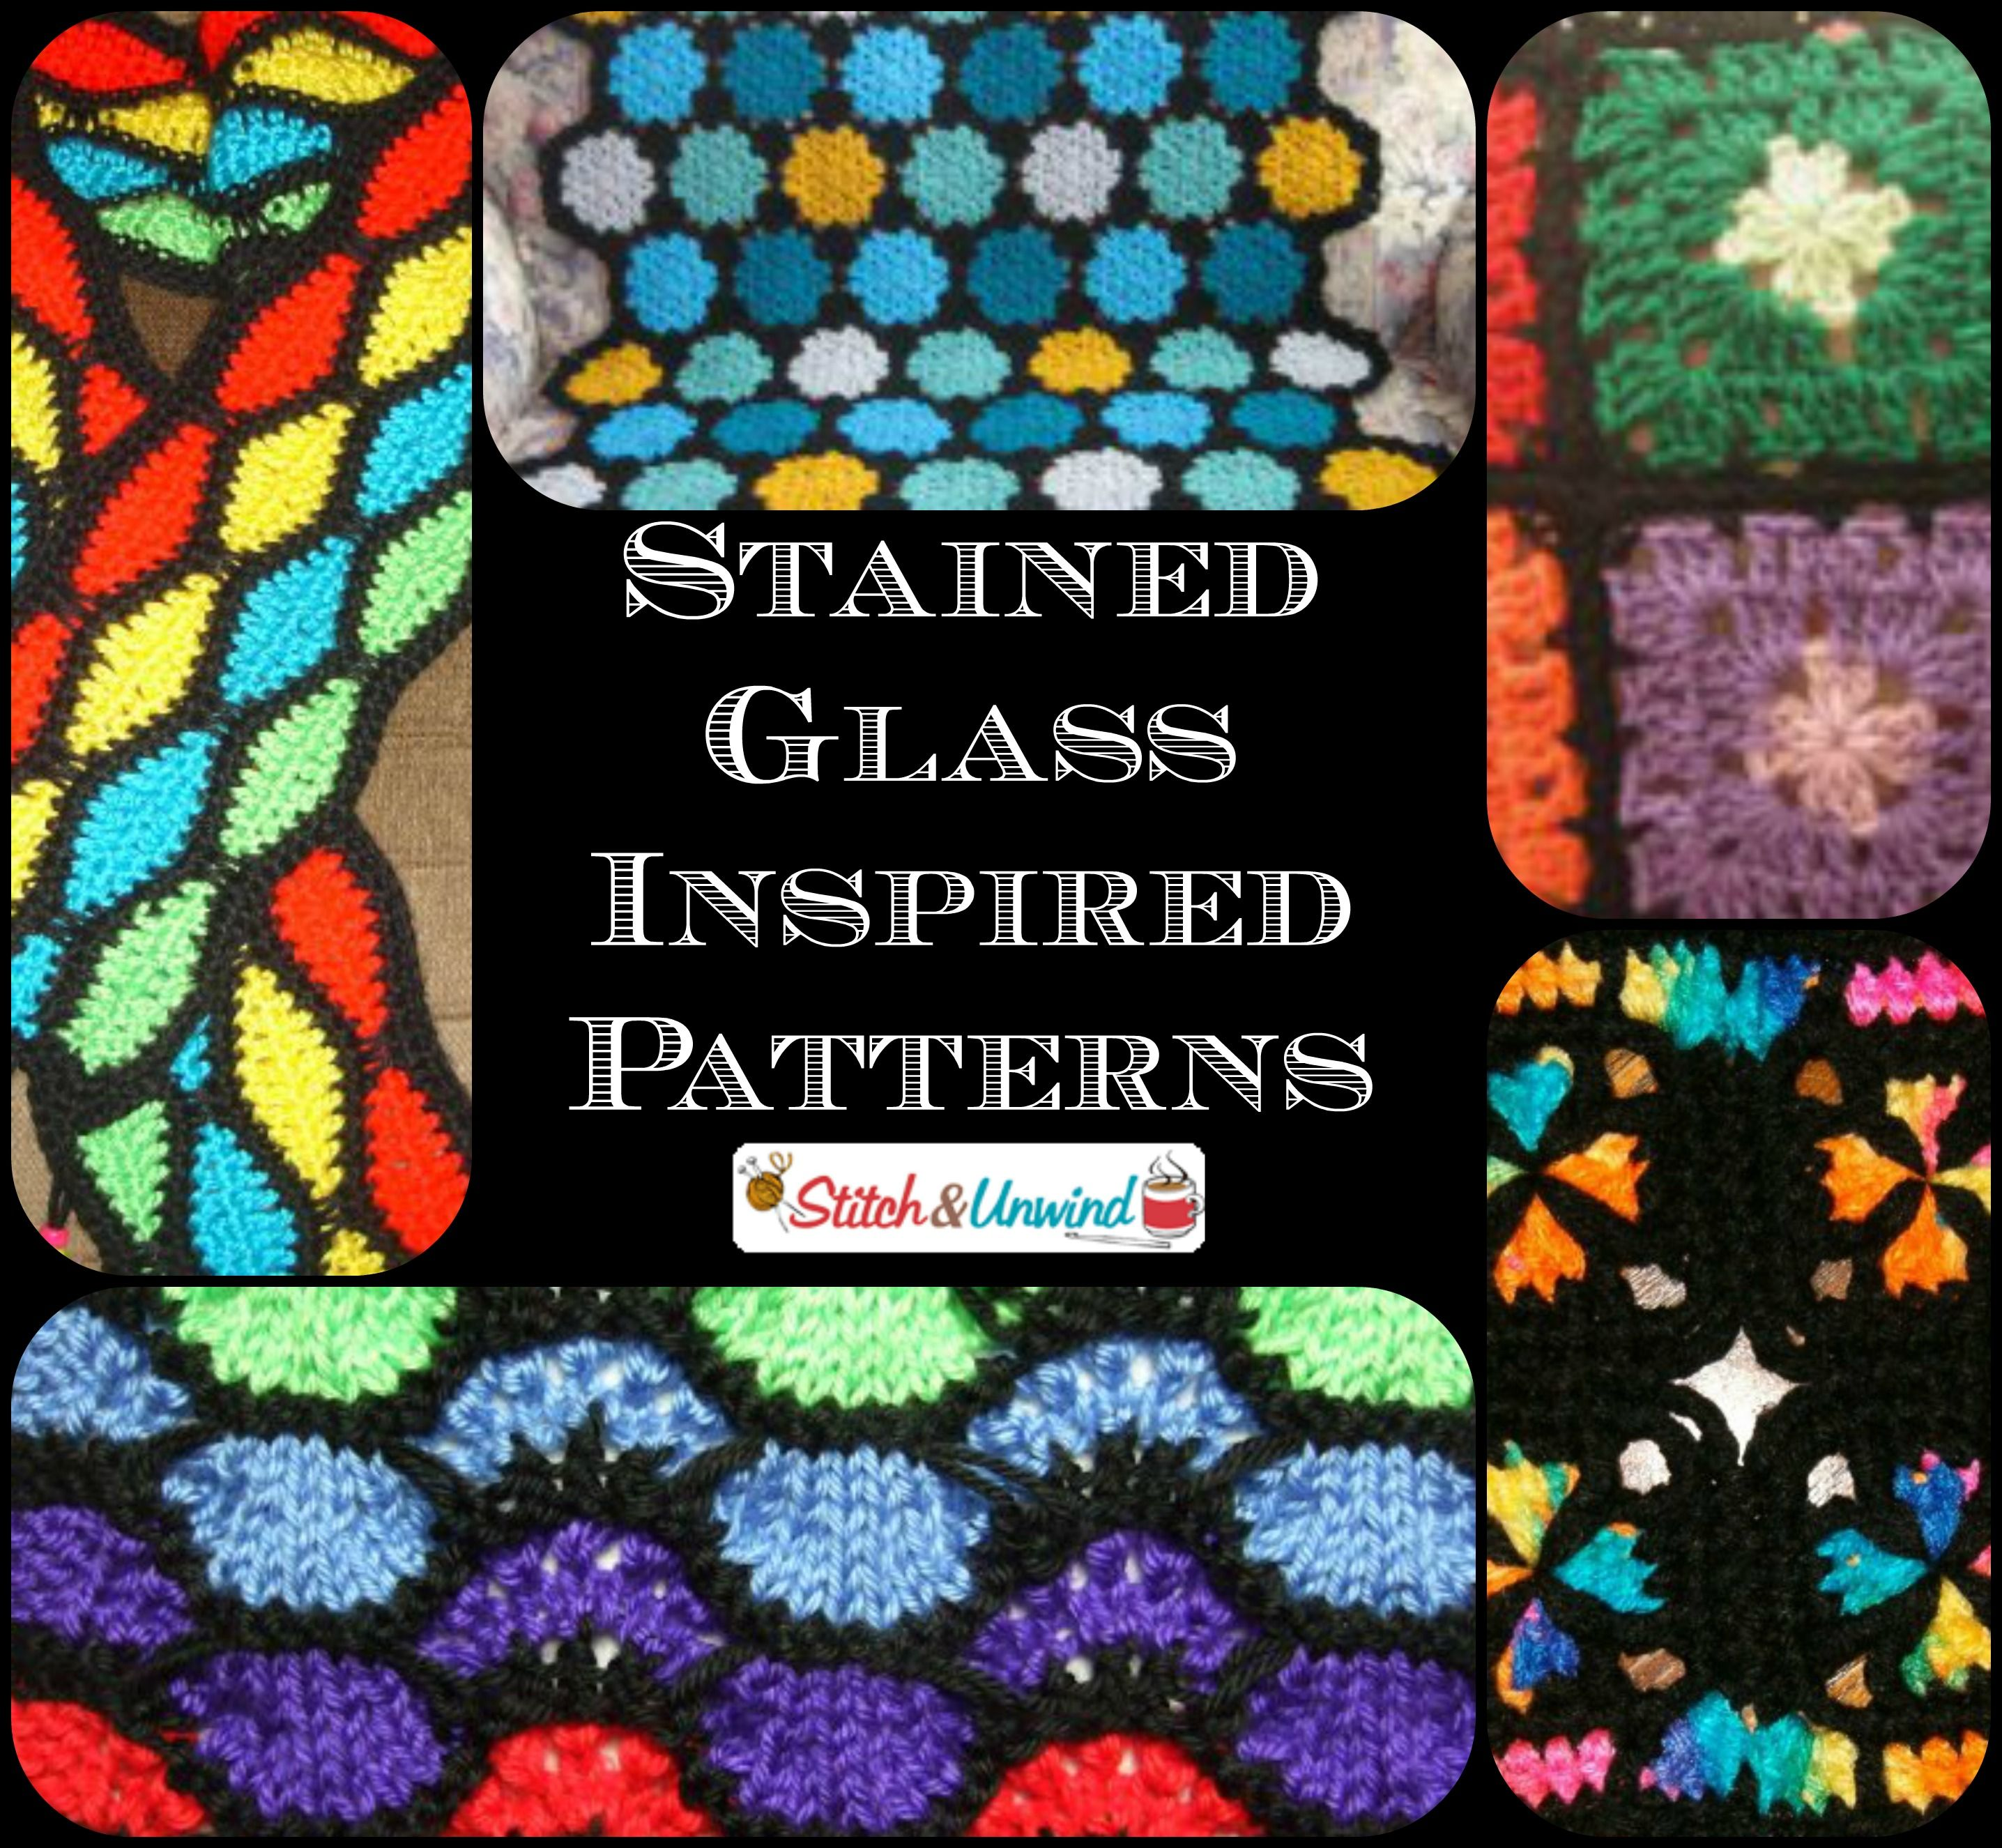 Stained Glass Inspired Patterns | Übersetzung, Decken und Muster